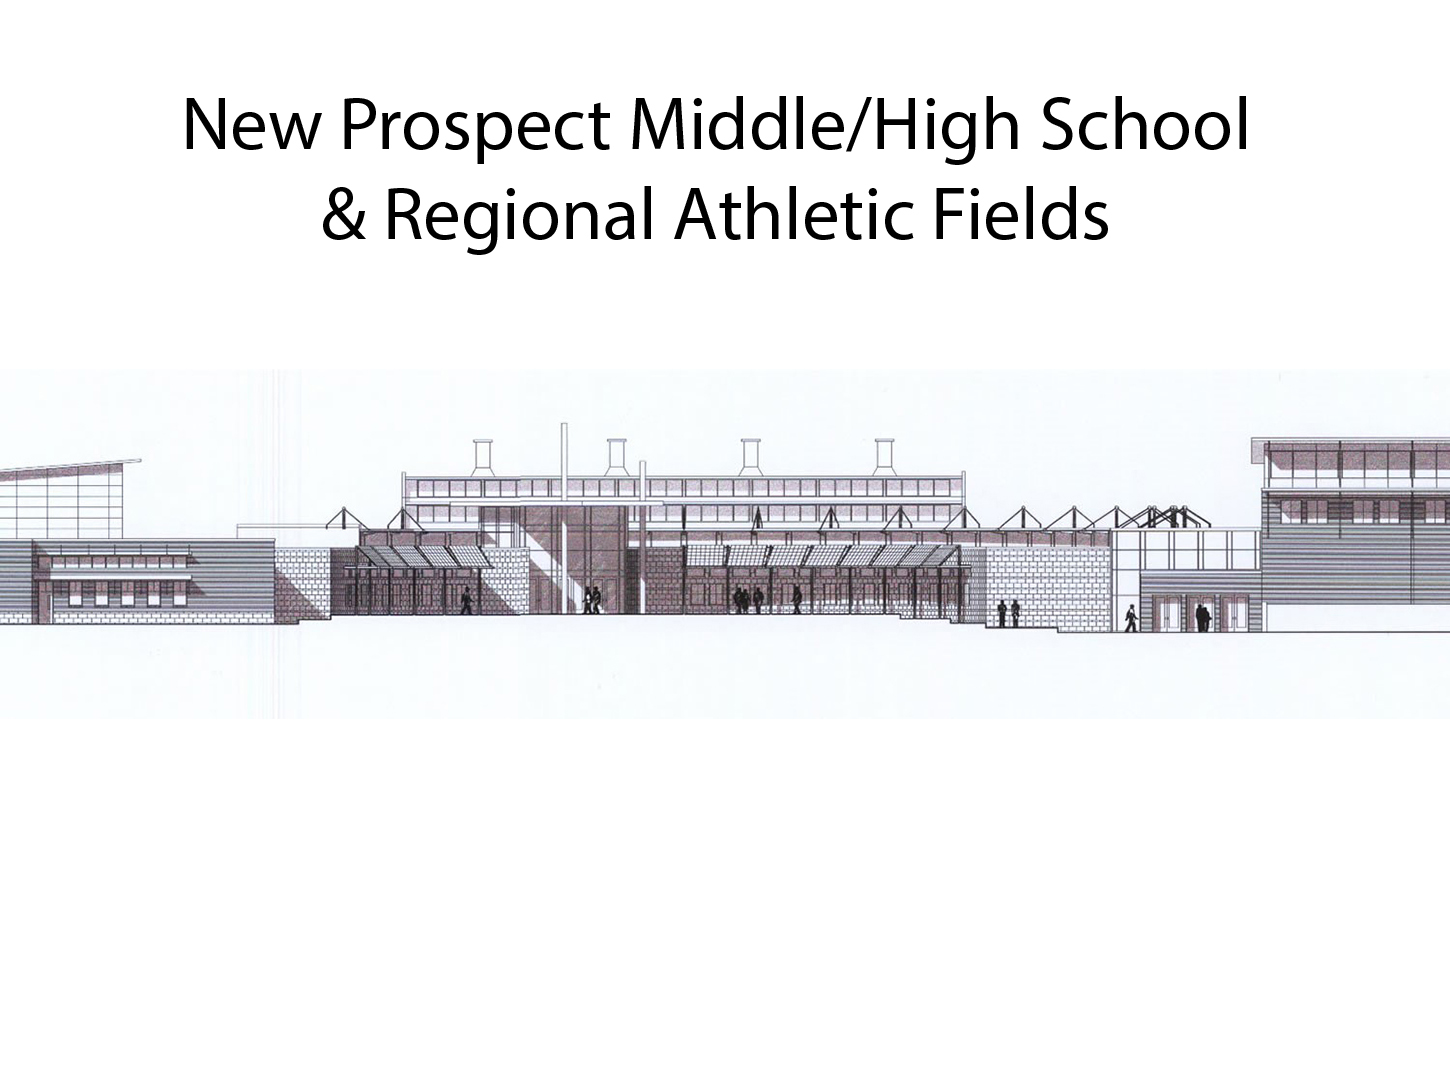 27-glendale-fort_collins-new_prospect_middle-high_school-new_home_community